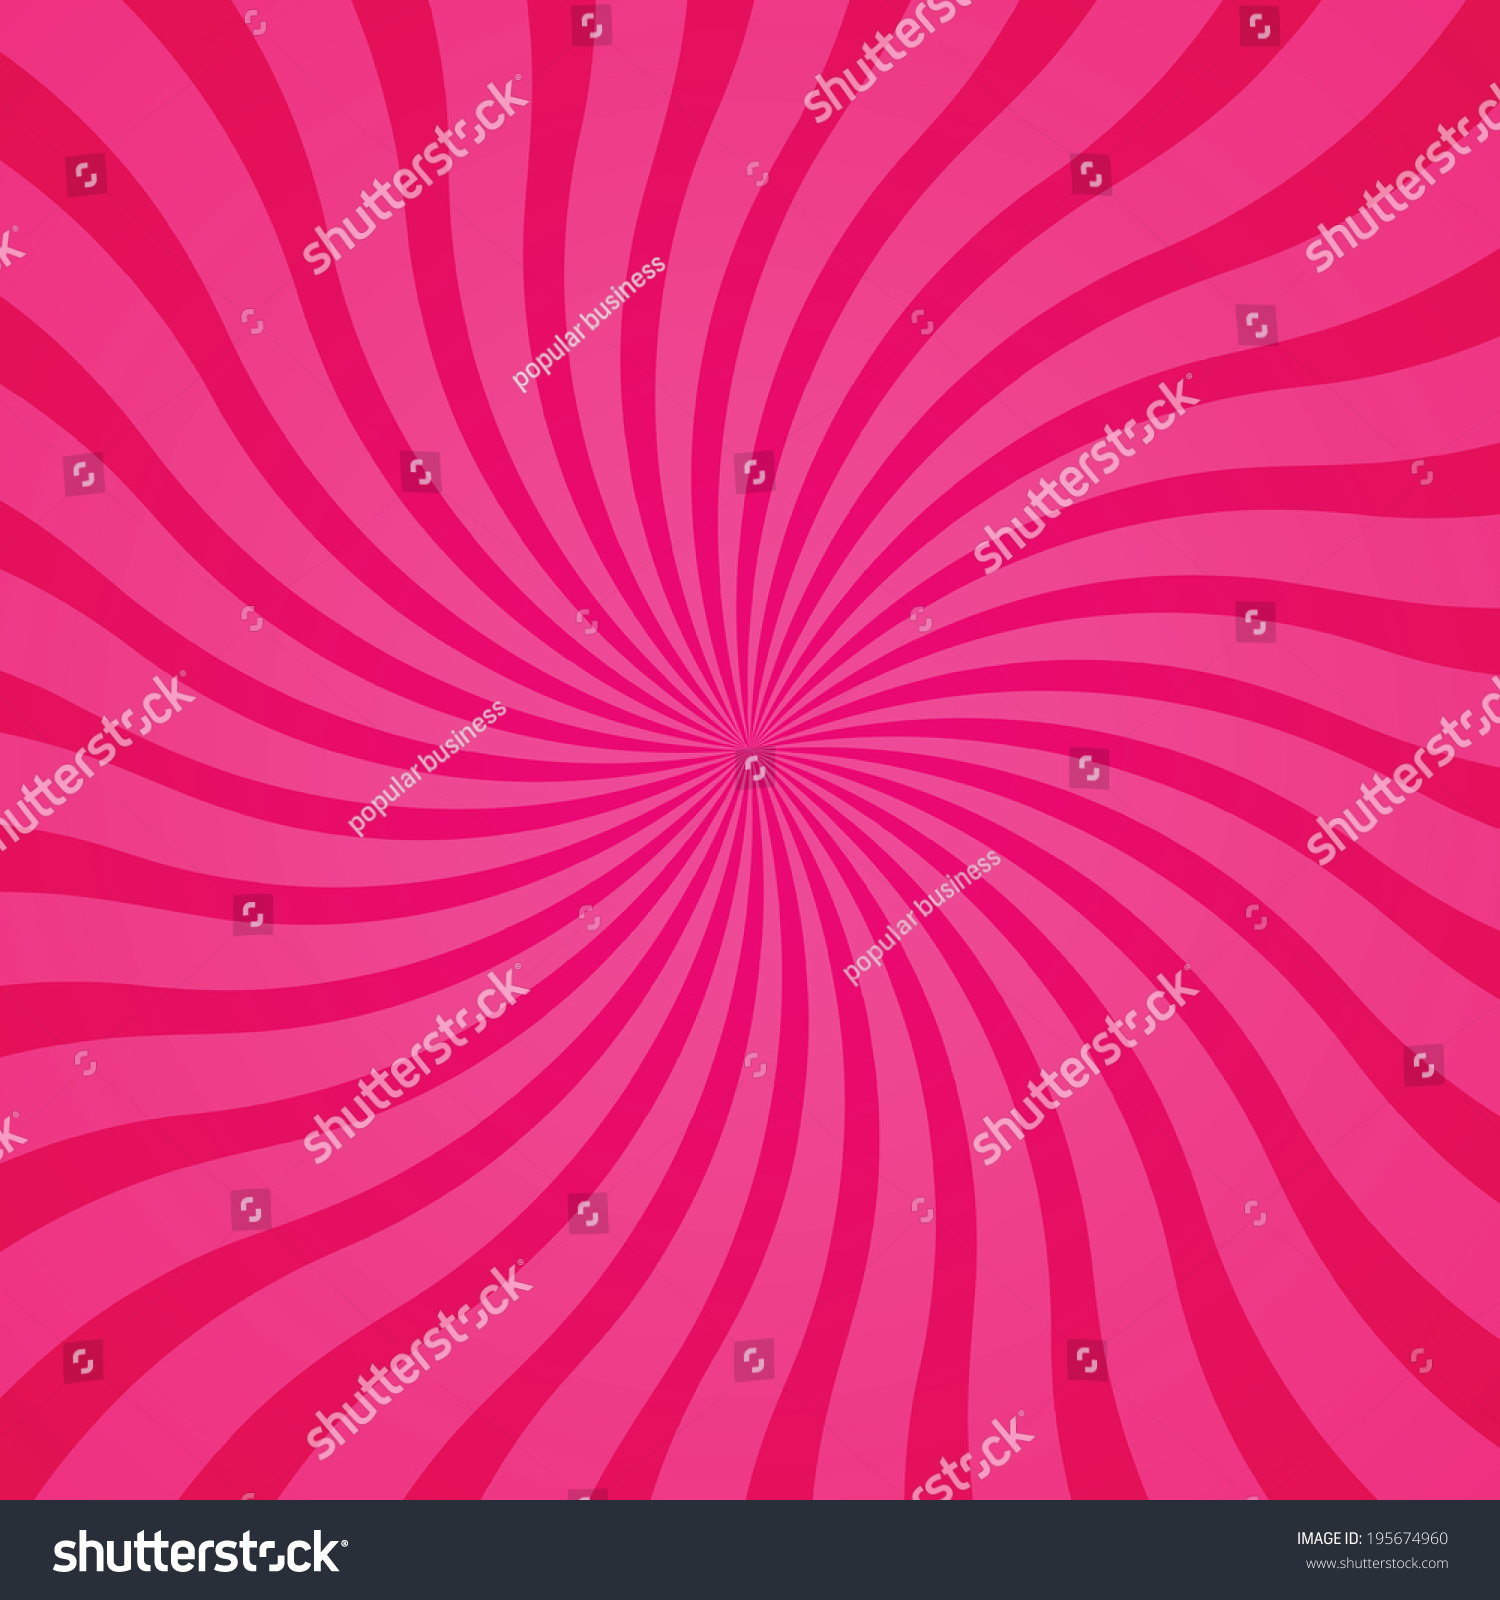 Background image rotate - Popular Twist Rotate Ray Background Vector